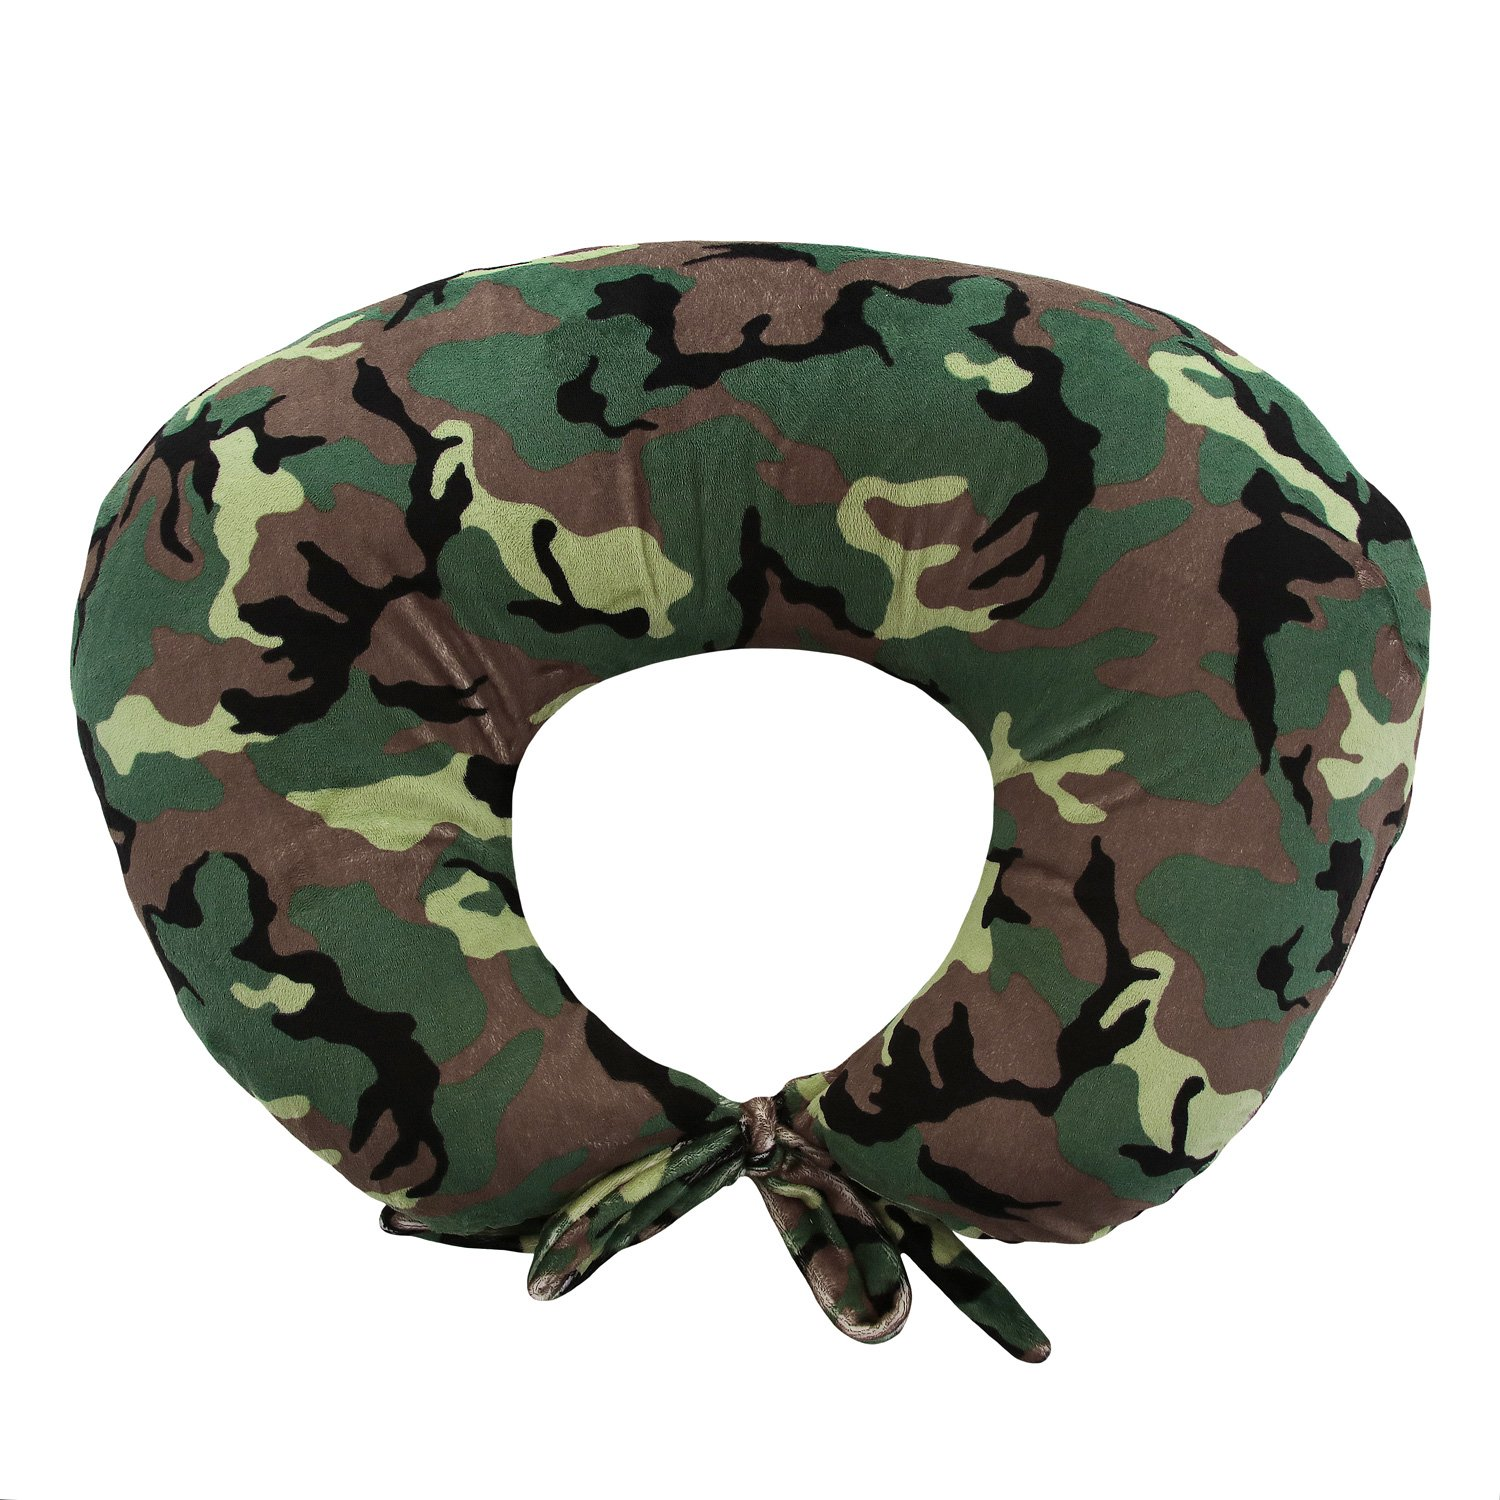 My Blankee Nursing Pillow with Camouflage Minky Slipcover, Army, Small/Medium